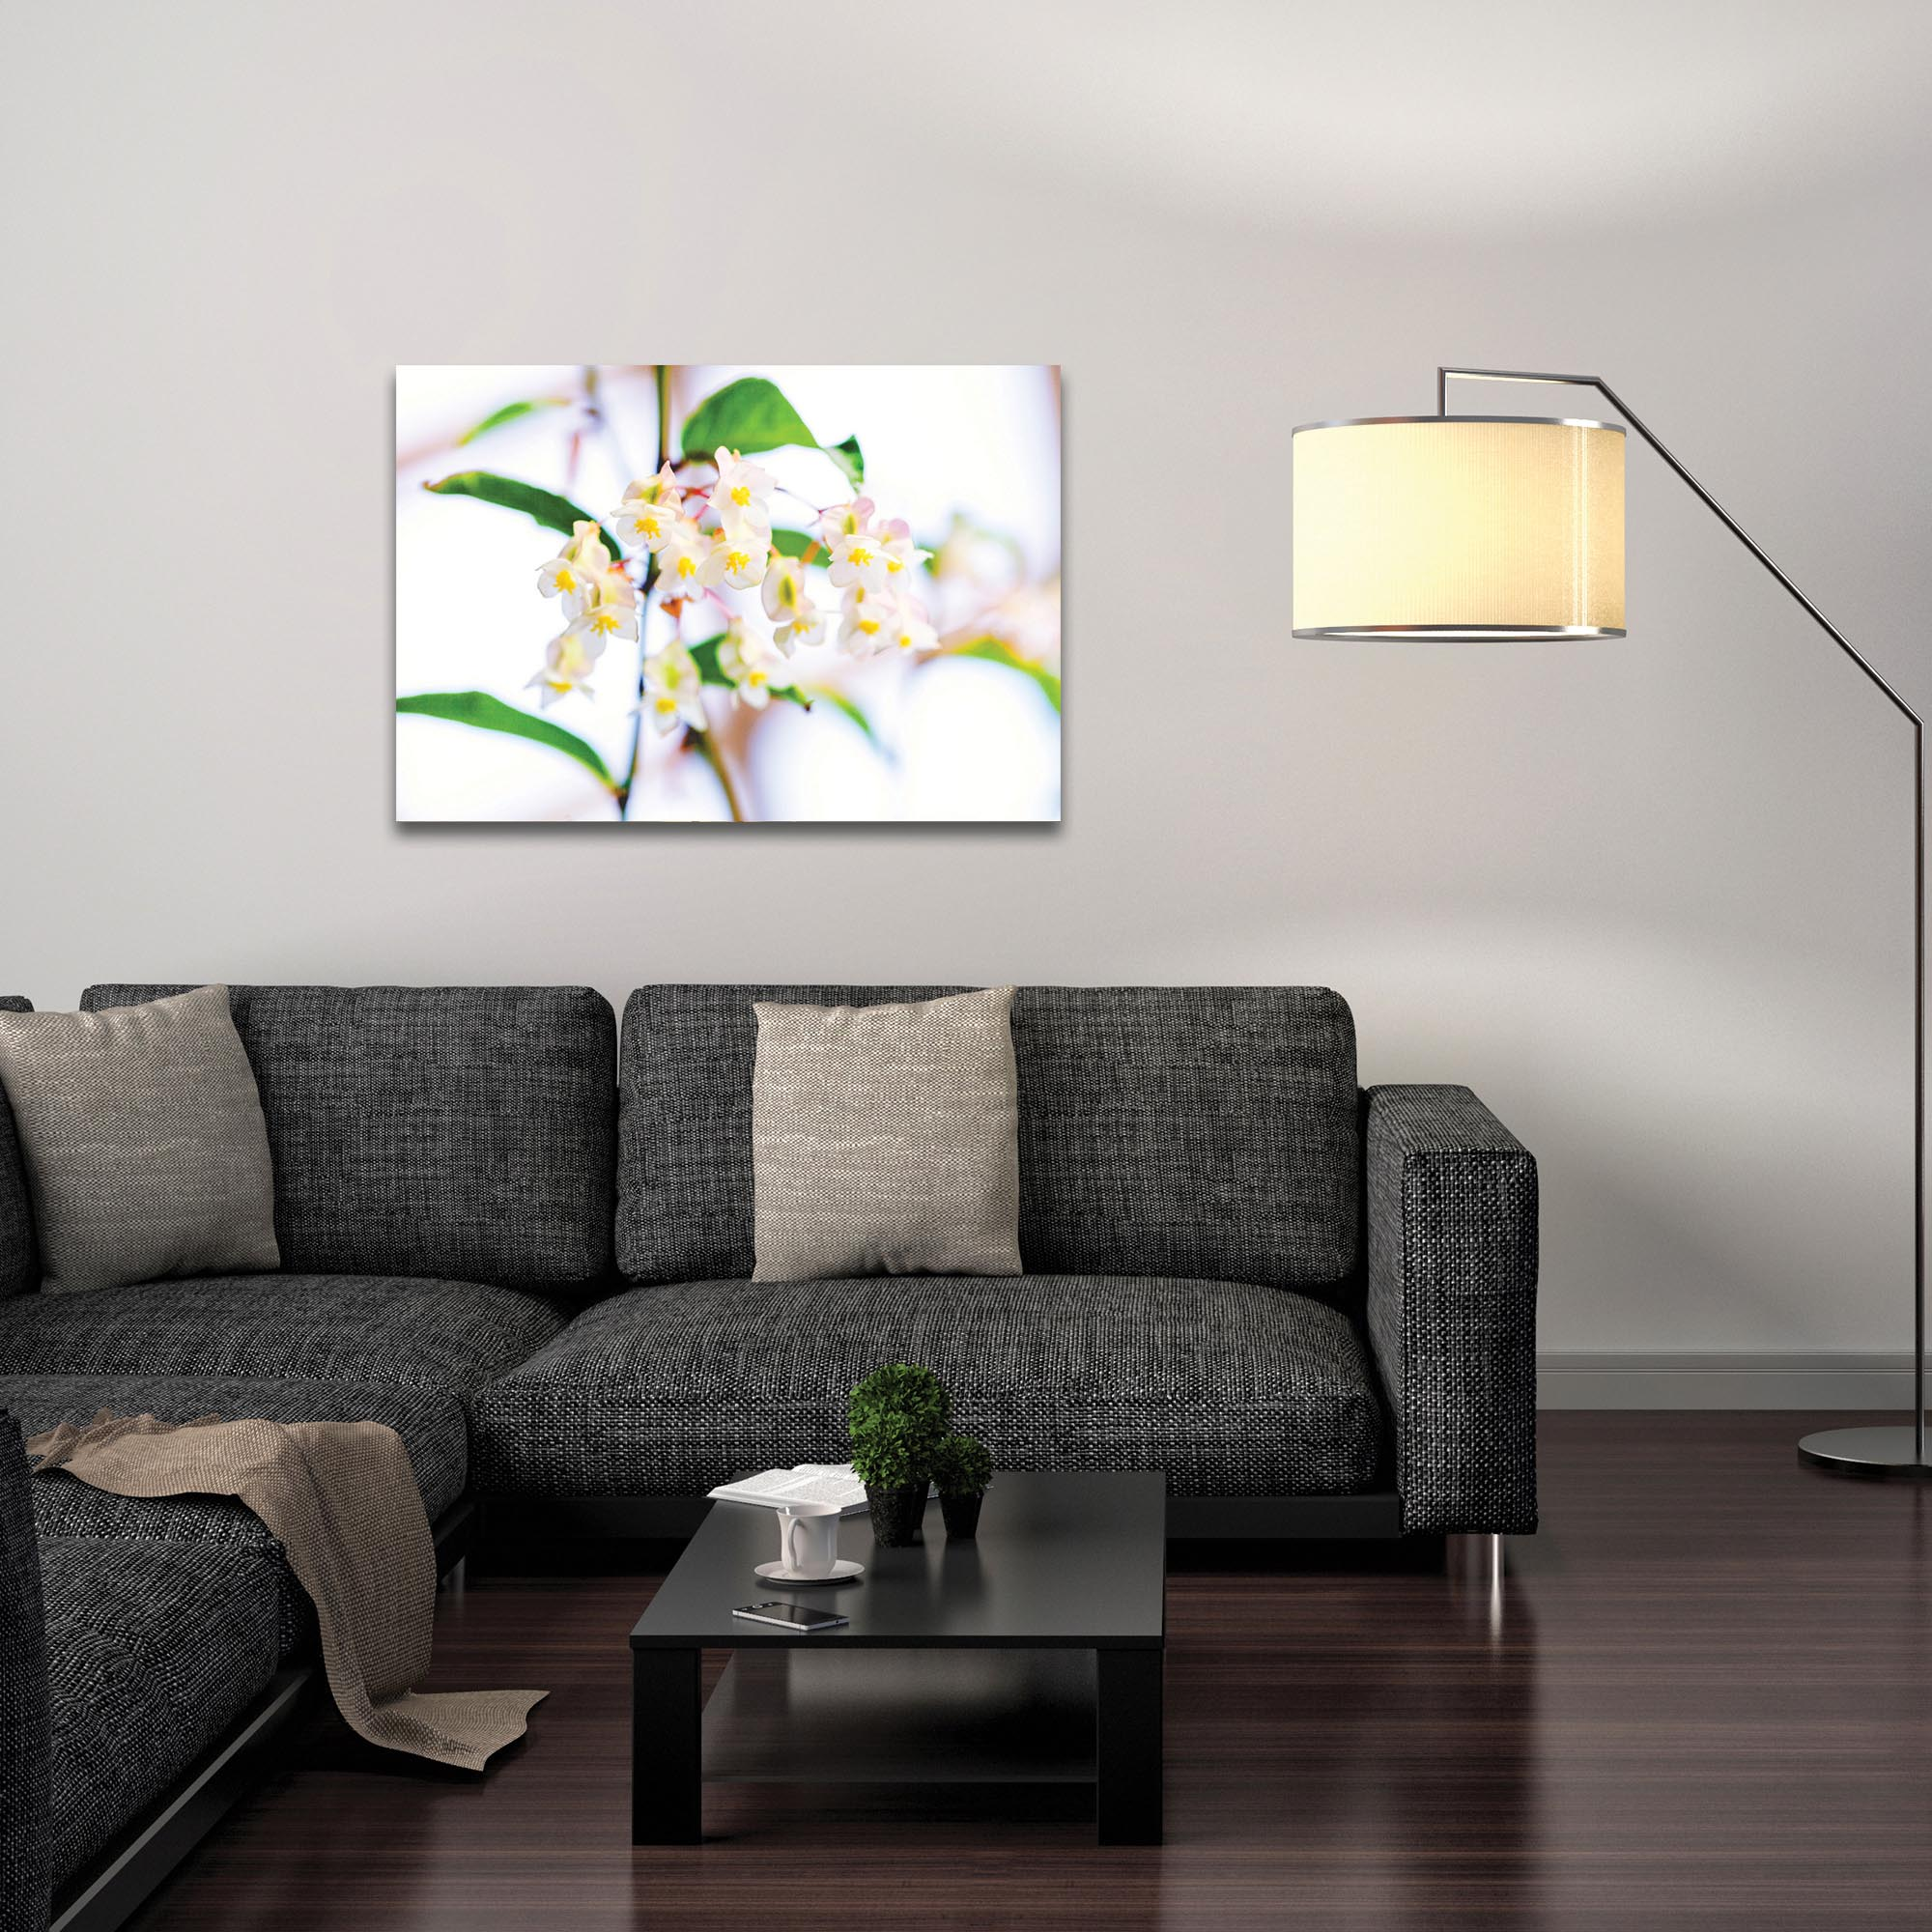 Nature Photography 'Popcorn in Bloom' - Flower Blossom Art on Metal or Plexiglass - Lifestyle View